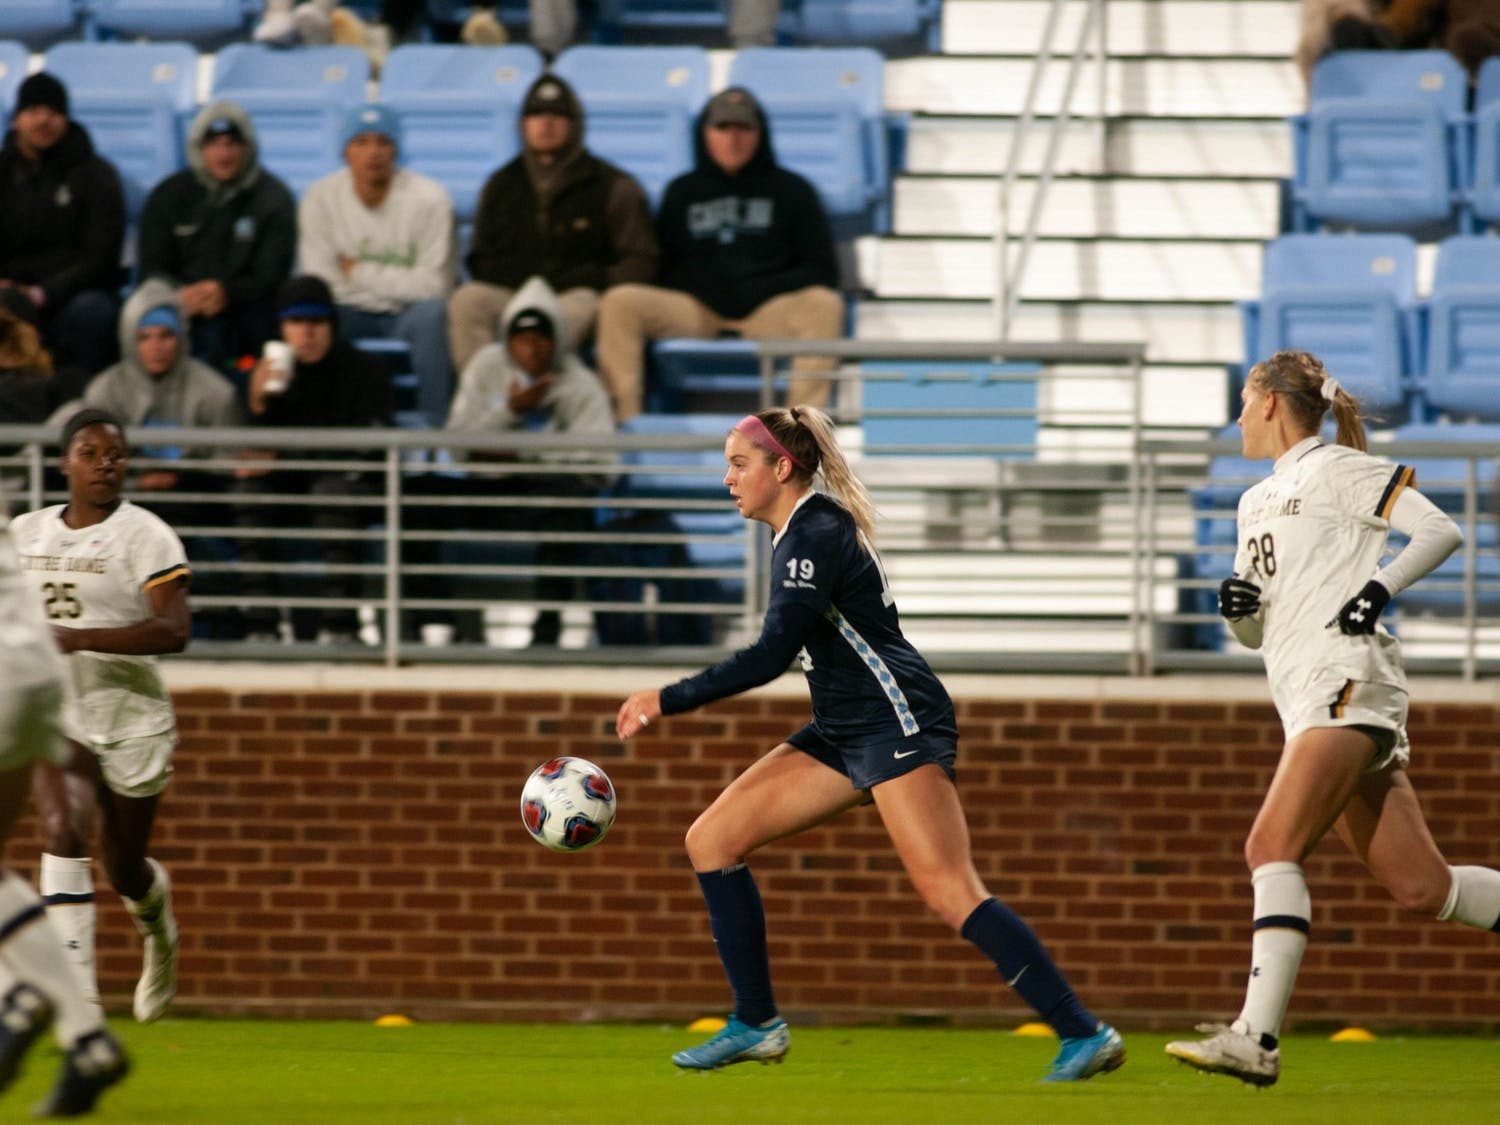 UNC junior forward Alessia Russo (19) dribbles the ball downfield during the Tar Heels' 3-0 victory over Notre Dame at Dorrance Field on Sunday, Nov. 3, 2019.